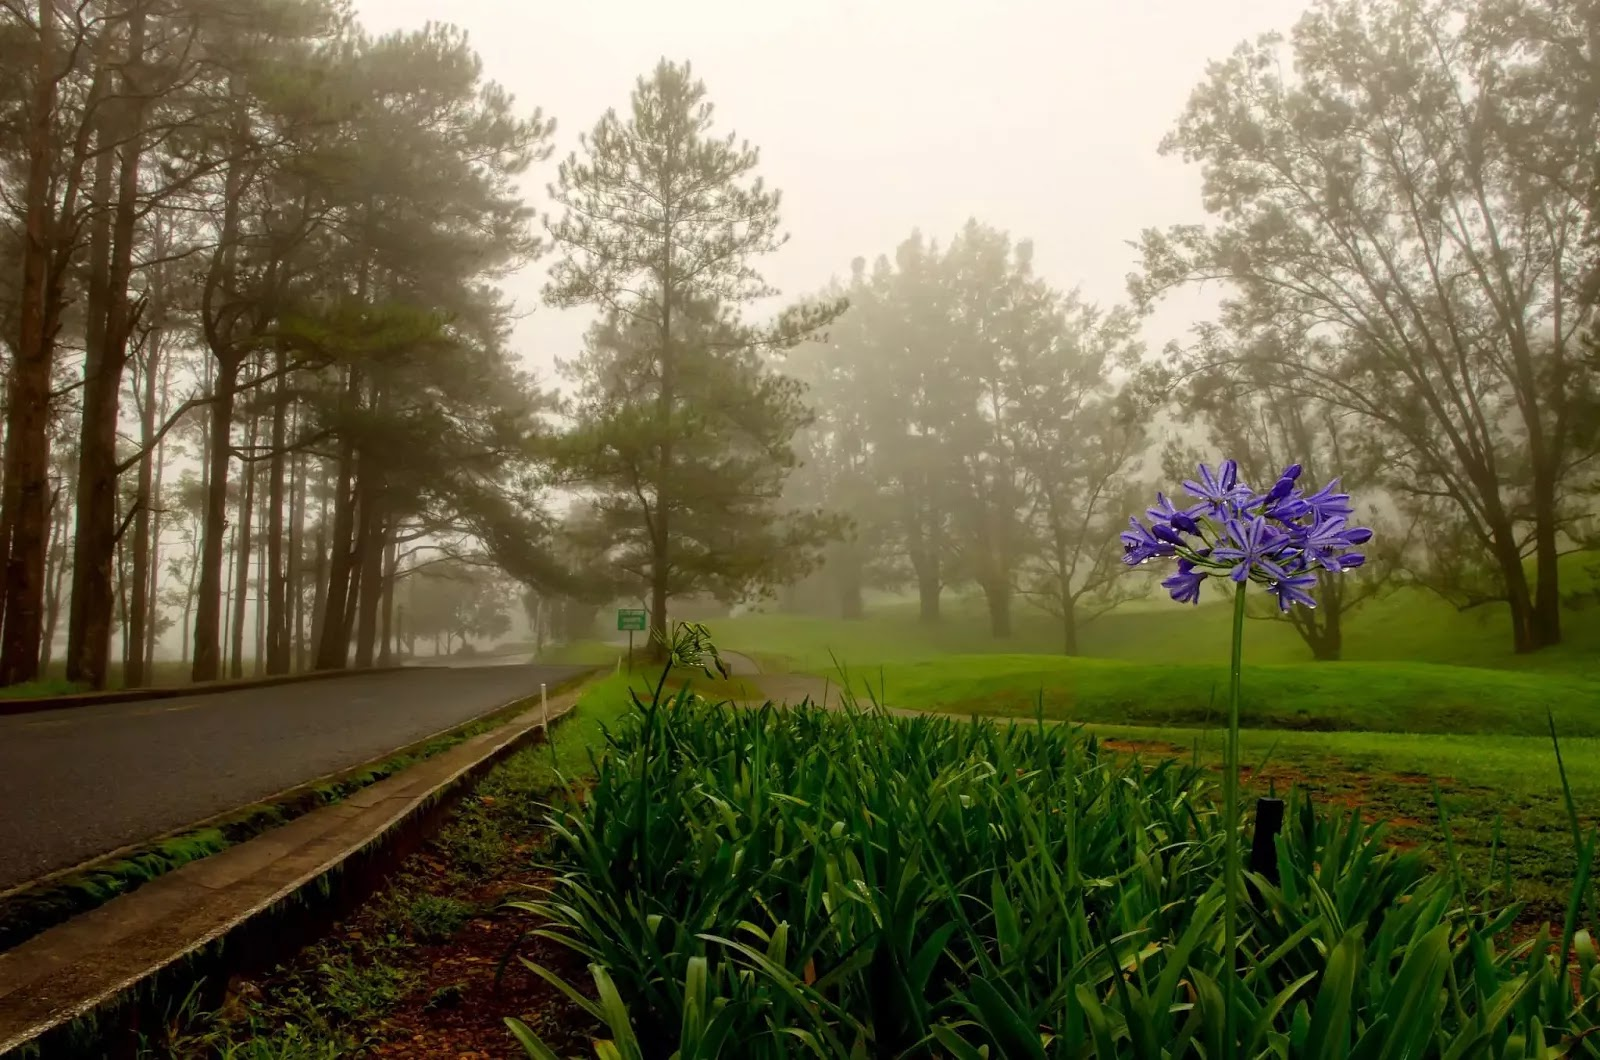 Foggy Day Flora Baguio City Camp John Hay Cordillera Administrative Region Philippines